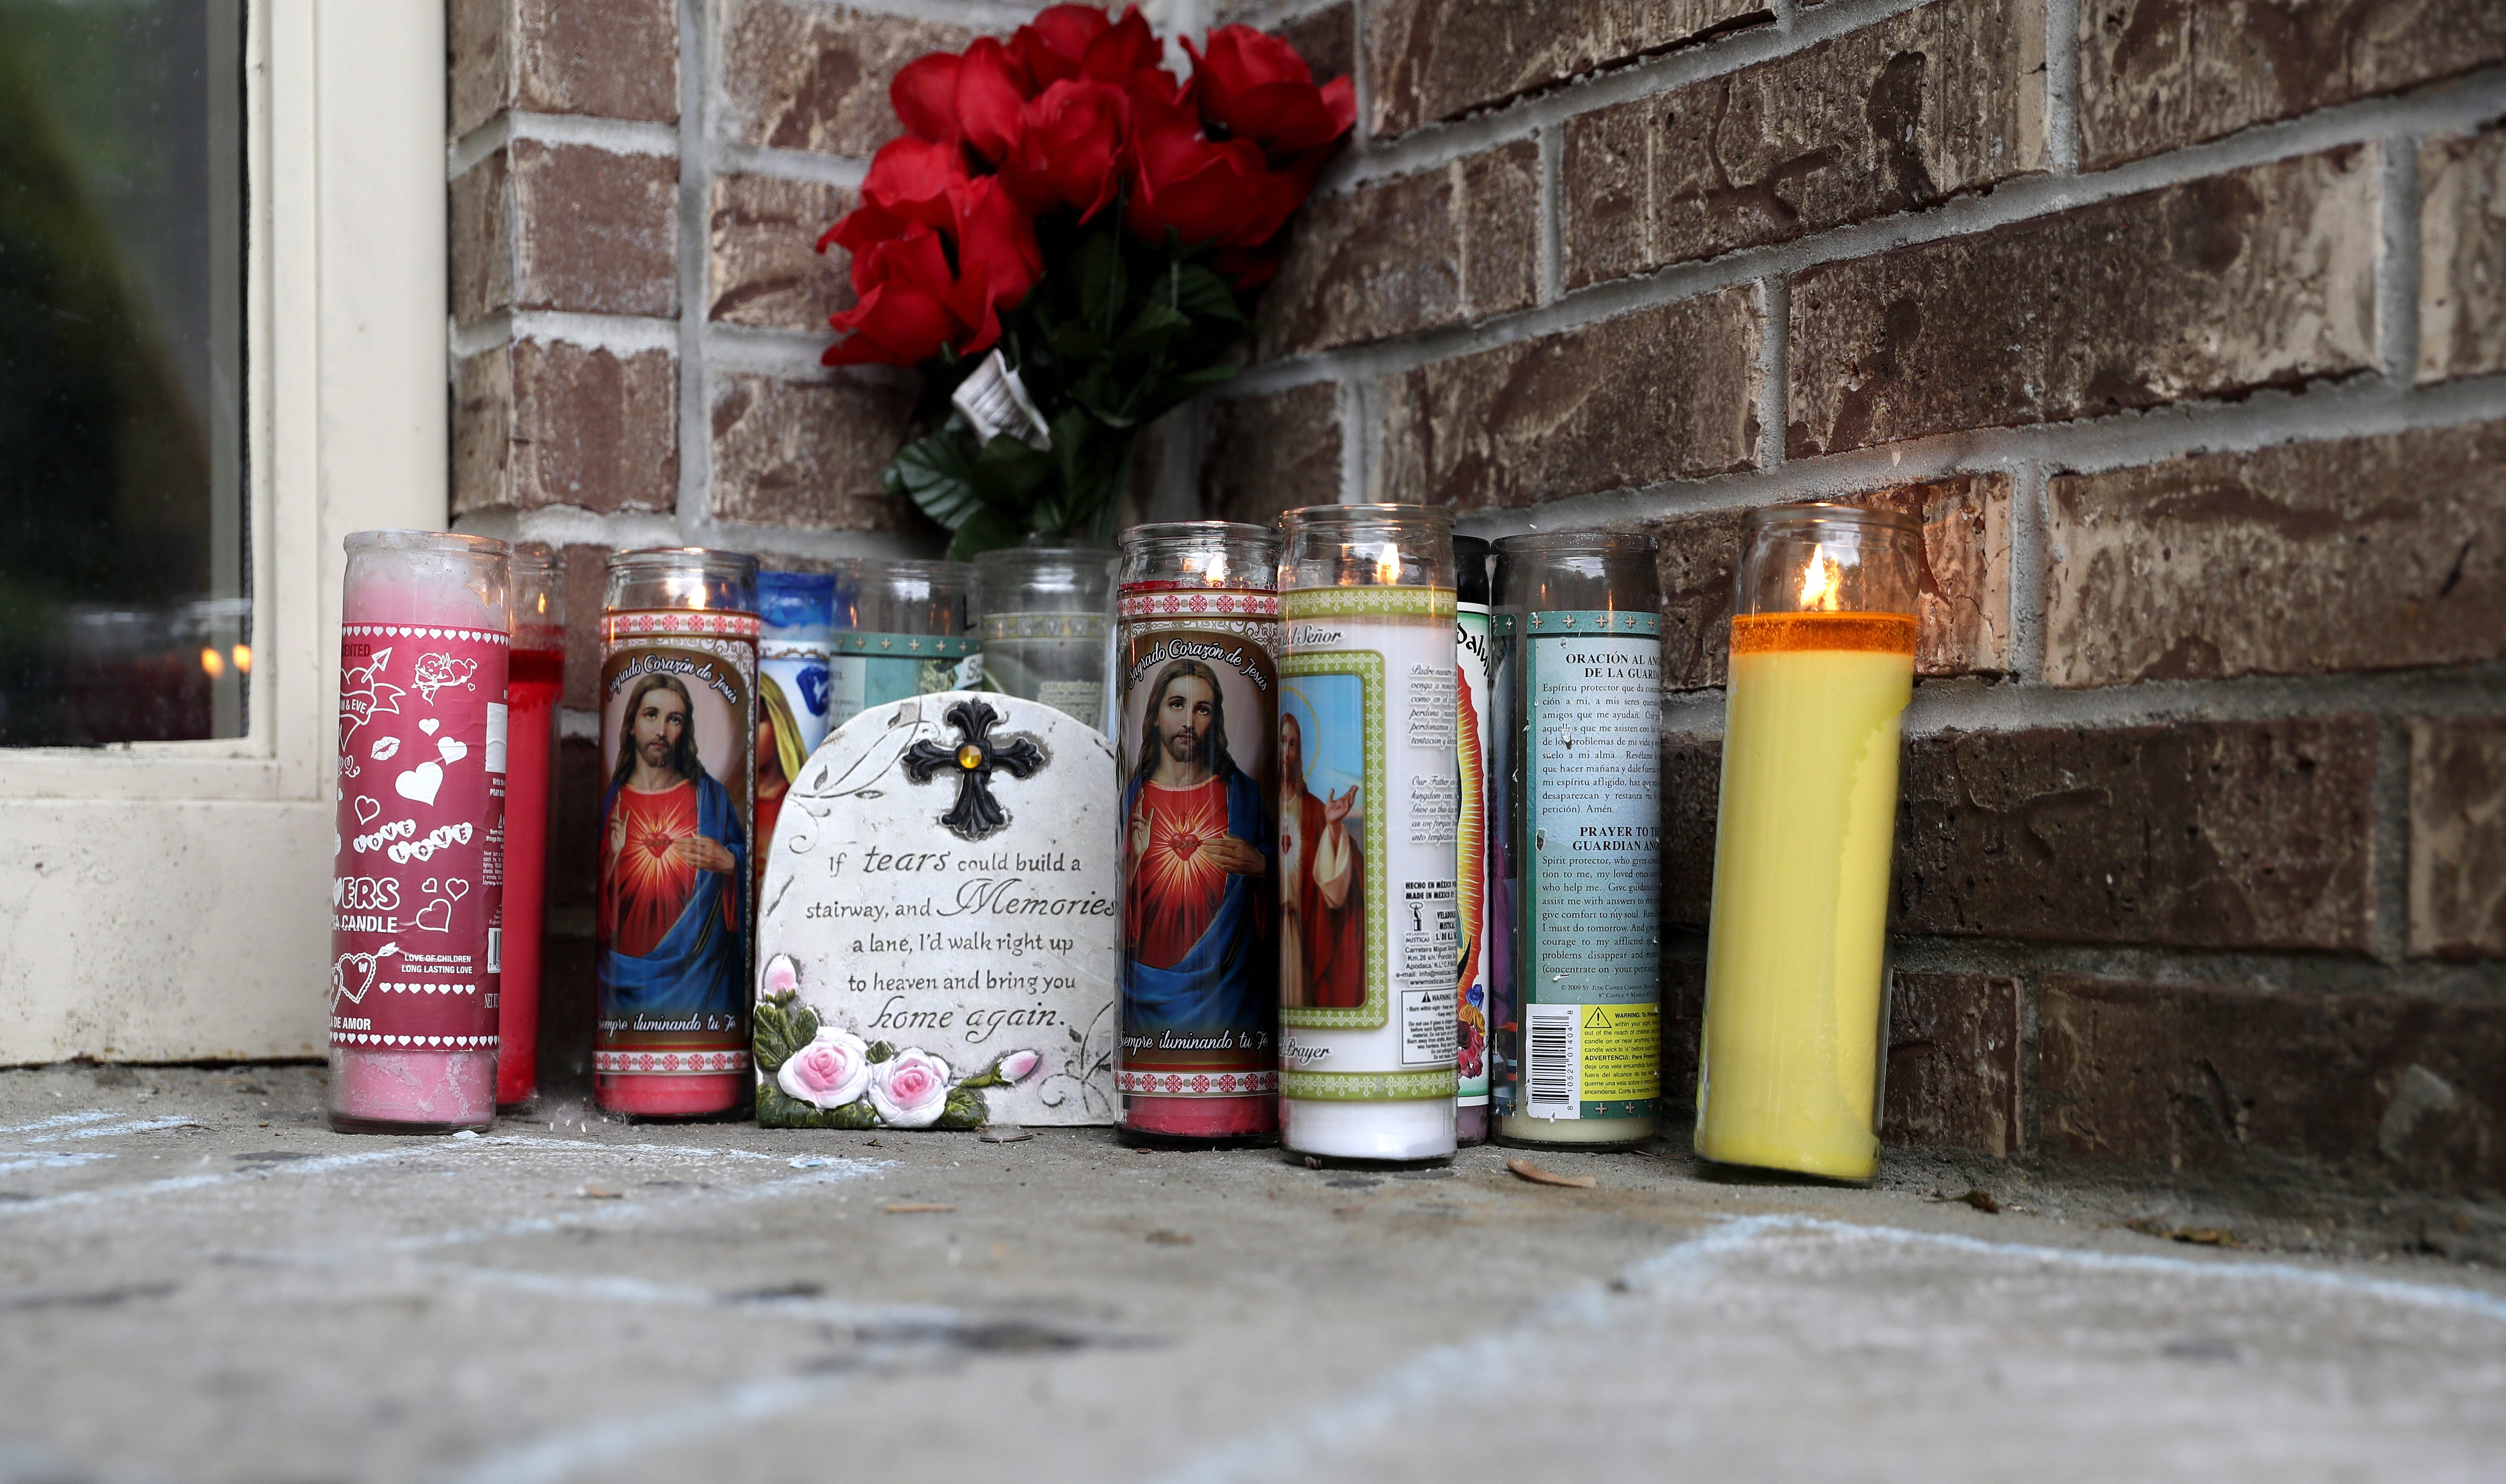 A memorial for Federico Abarca Jr., who was killed in February 2019, sits outside his home in Green Bay.